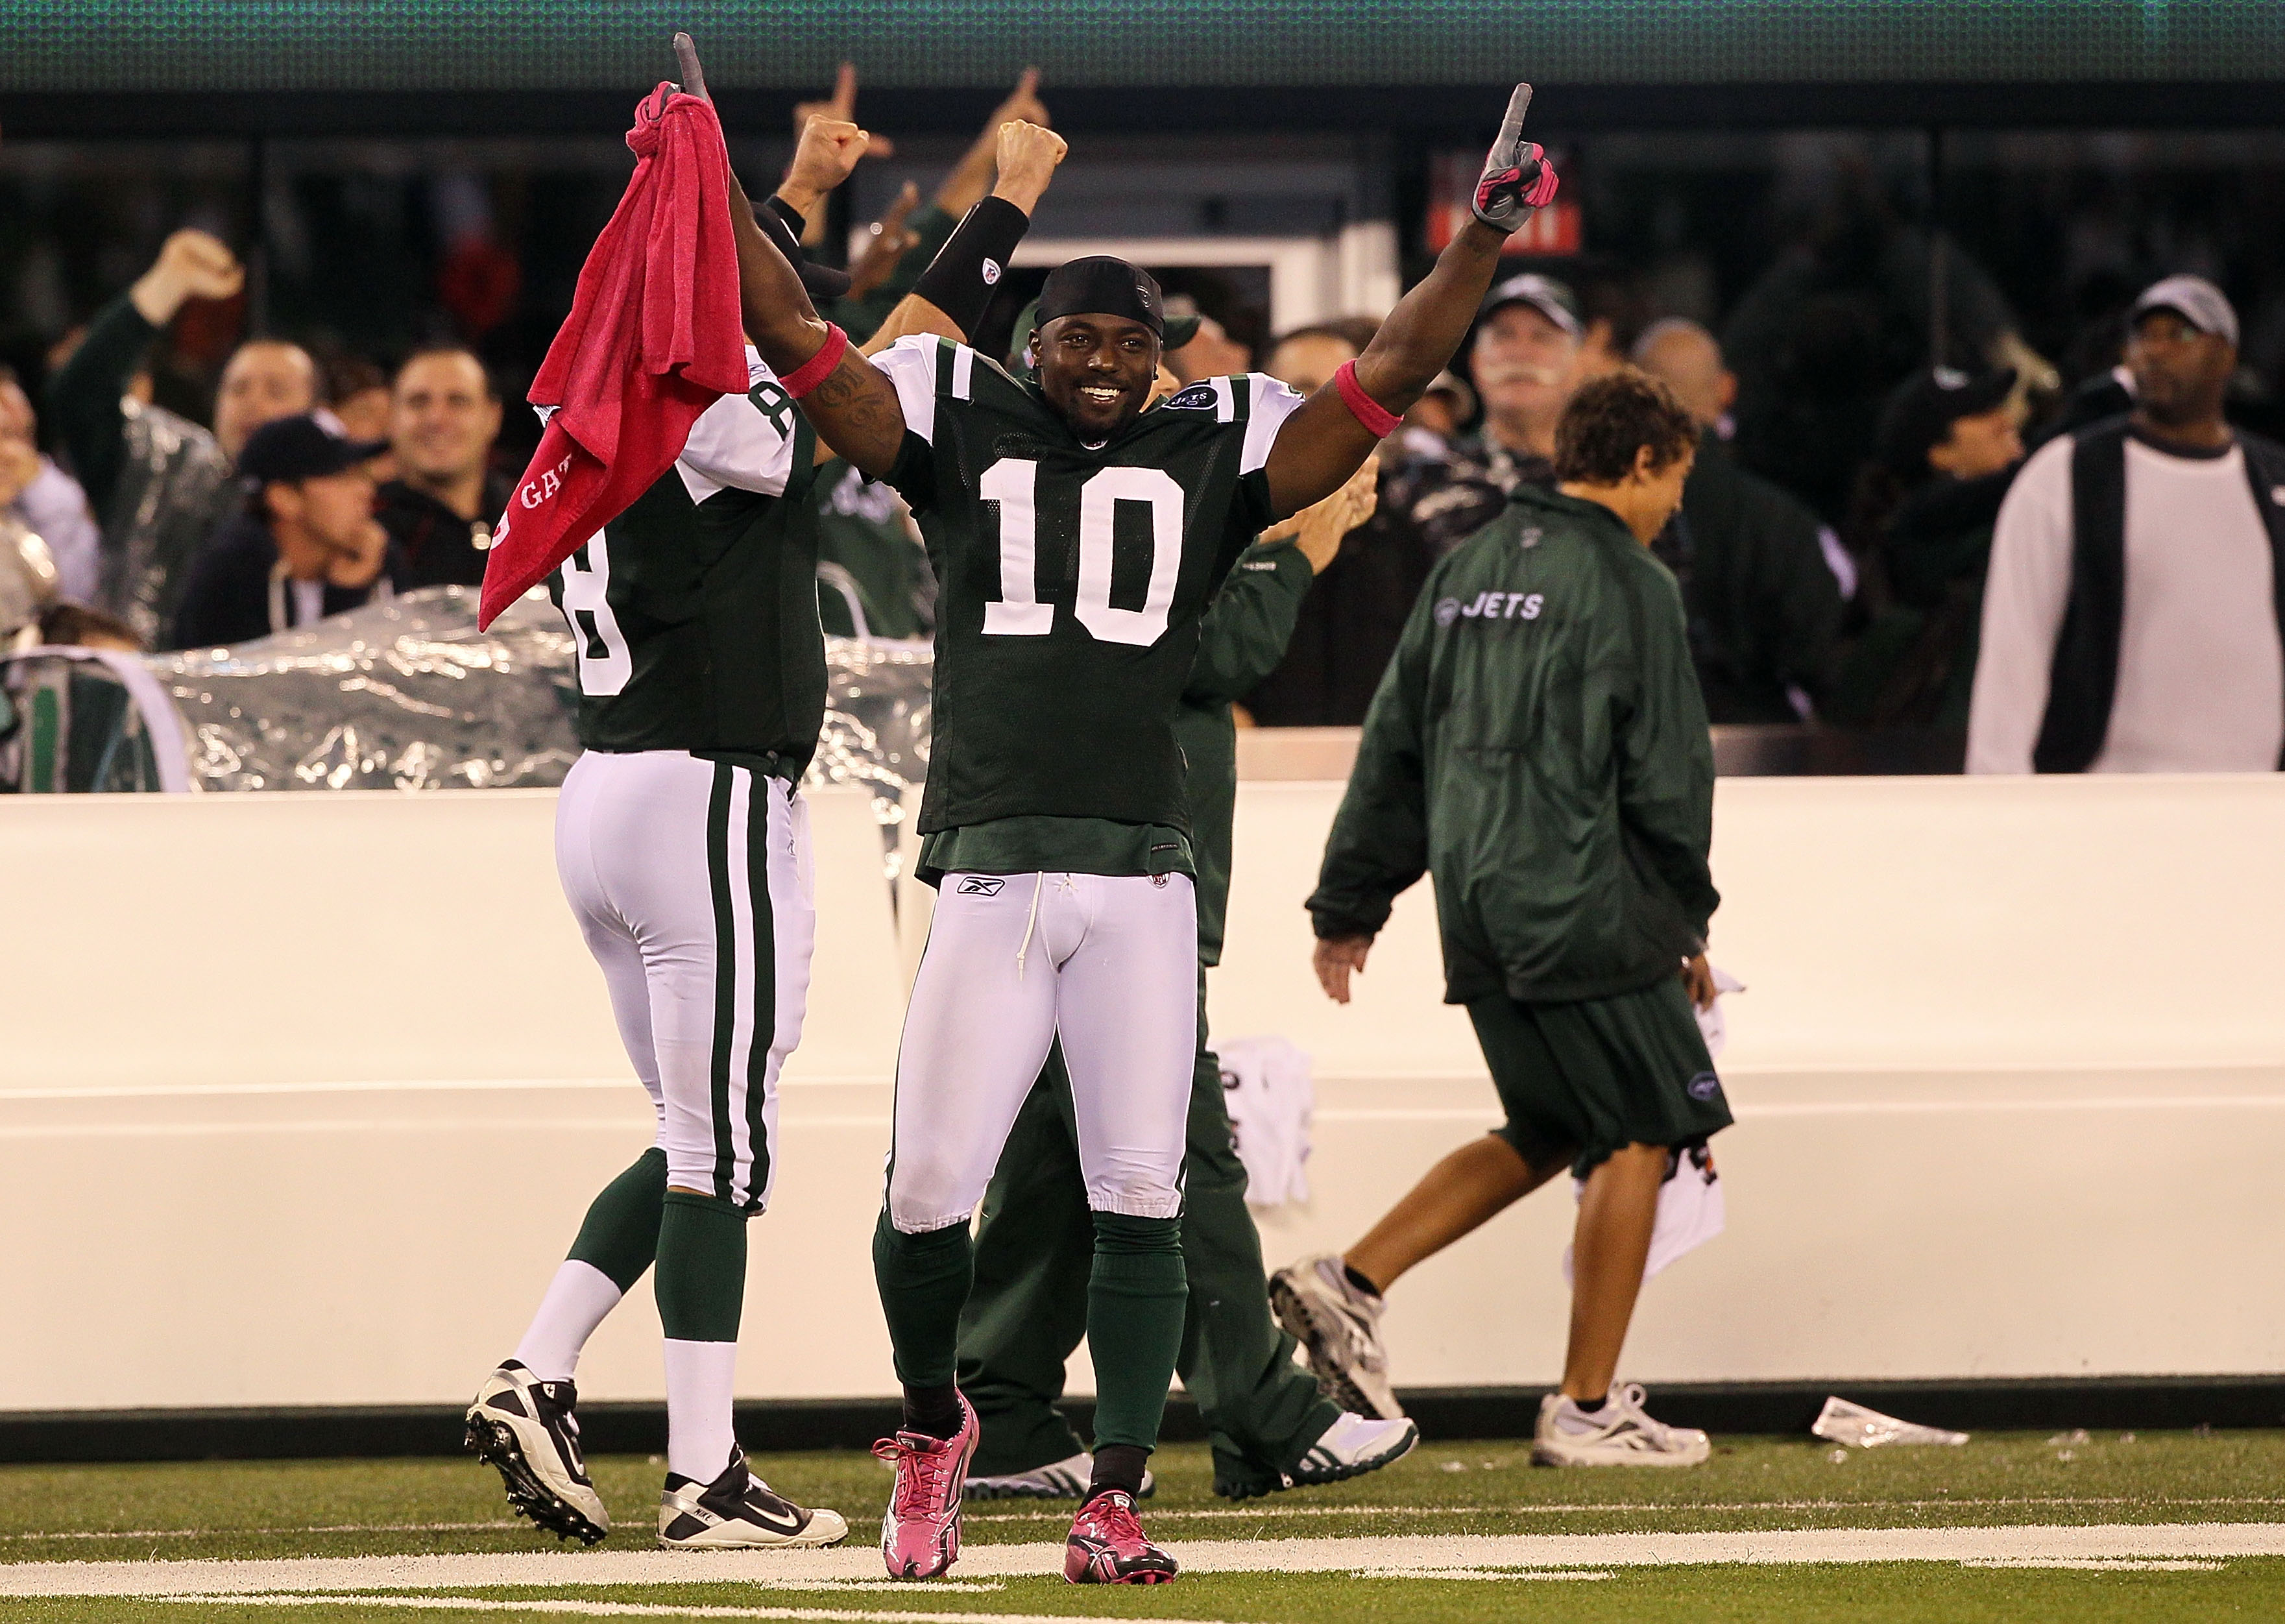 EAST RUTHERFORD, NJ - OCTOBER 11:  Santonio Holmes #10 of the New York Jets celebrates as Dwight Lowery #26 scored on a 26-yard interception return for a touchdown in the fourth quarter against the Minnesota Vikings at New Meadowlands Stadium on October 1